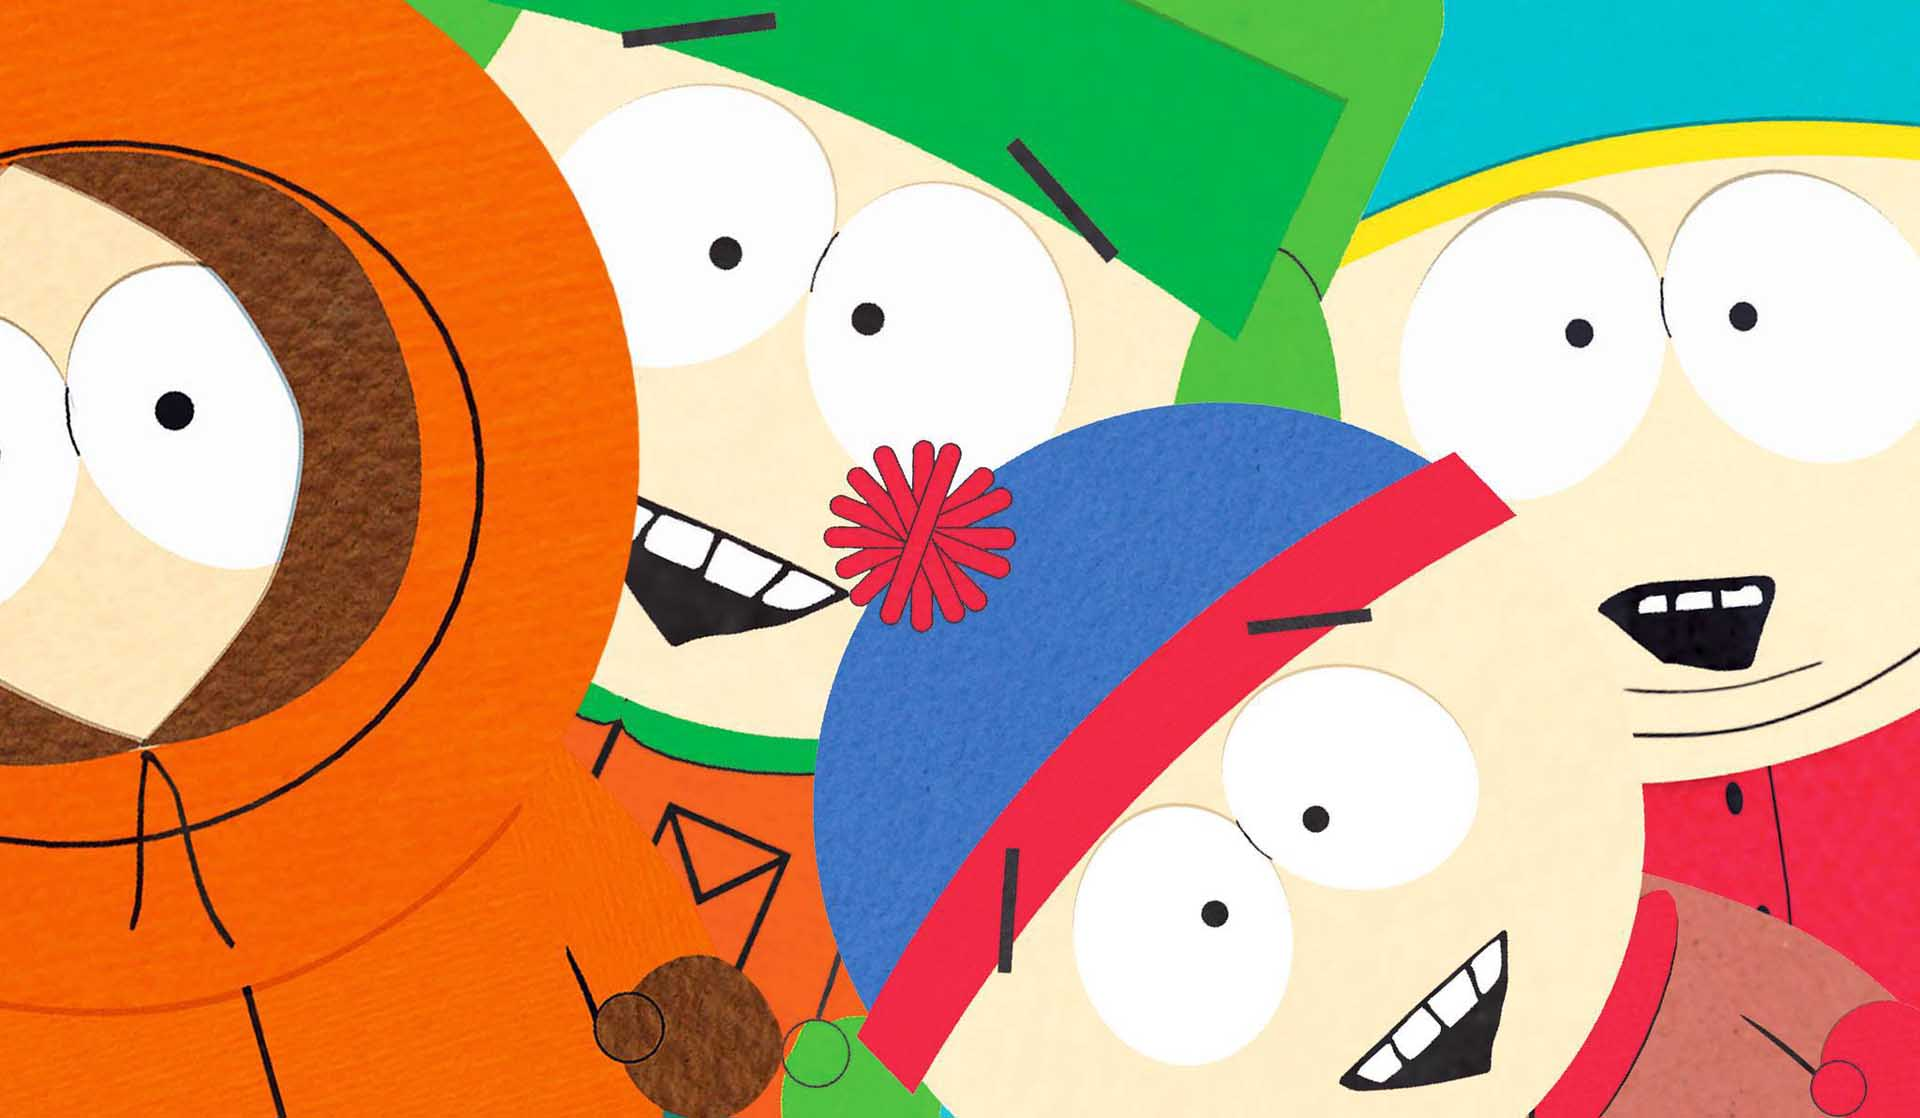 In the traditional reconstruction of the civil war between north and south cartman plays for southerners